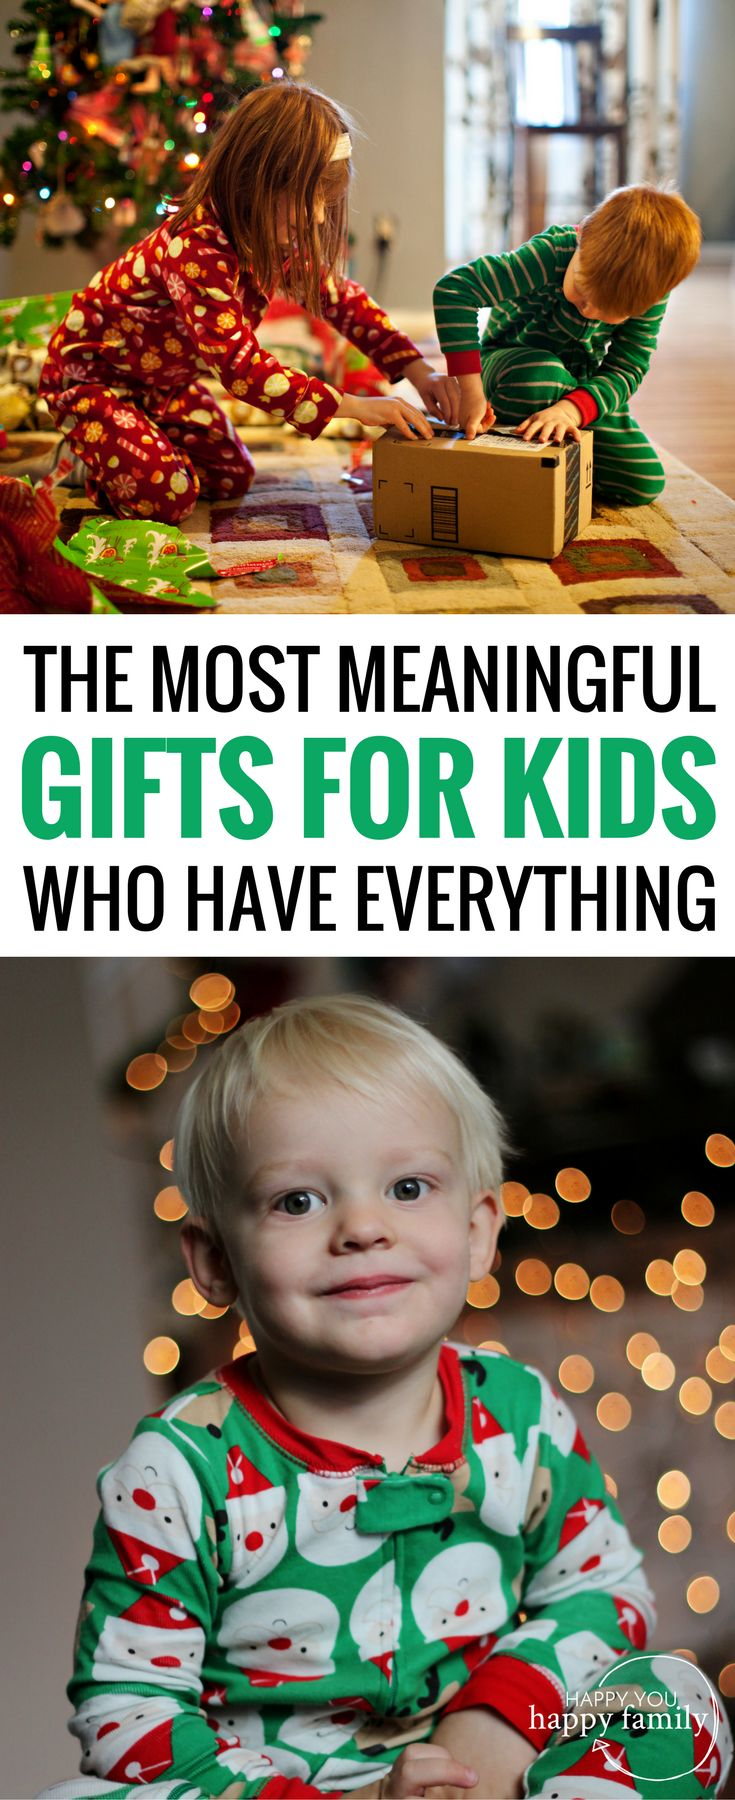 This gift guide for kids is EPIC! Most kids' gifts will end up forgotten. But here are 33 meaningful gifts they'll treasure for a very long time. This list is especially helpful if you're looking for non-toy gifts for kids for Christmas or birthdays. The best part: Your kids will FLIP for these presents! #giftguide #giftsforkids #kidsgifts #christmasgiftsforkids